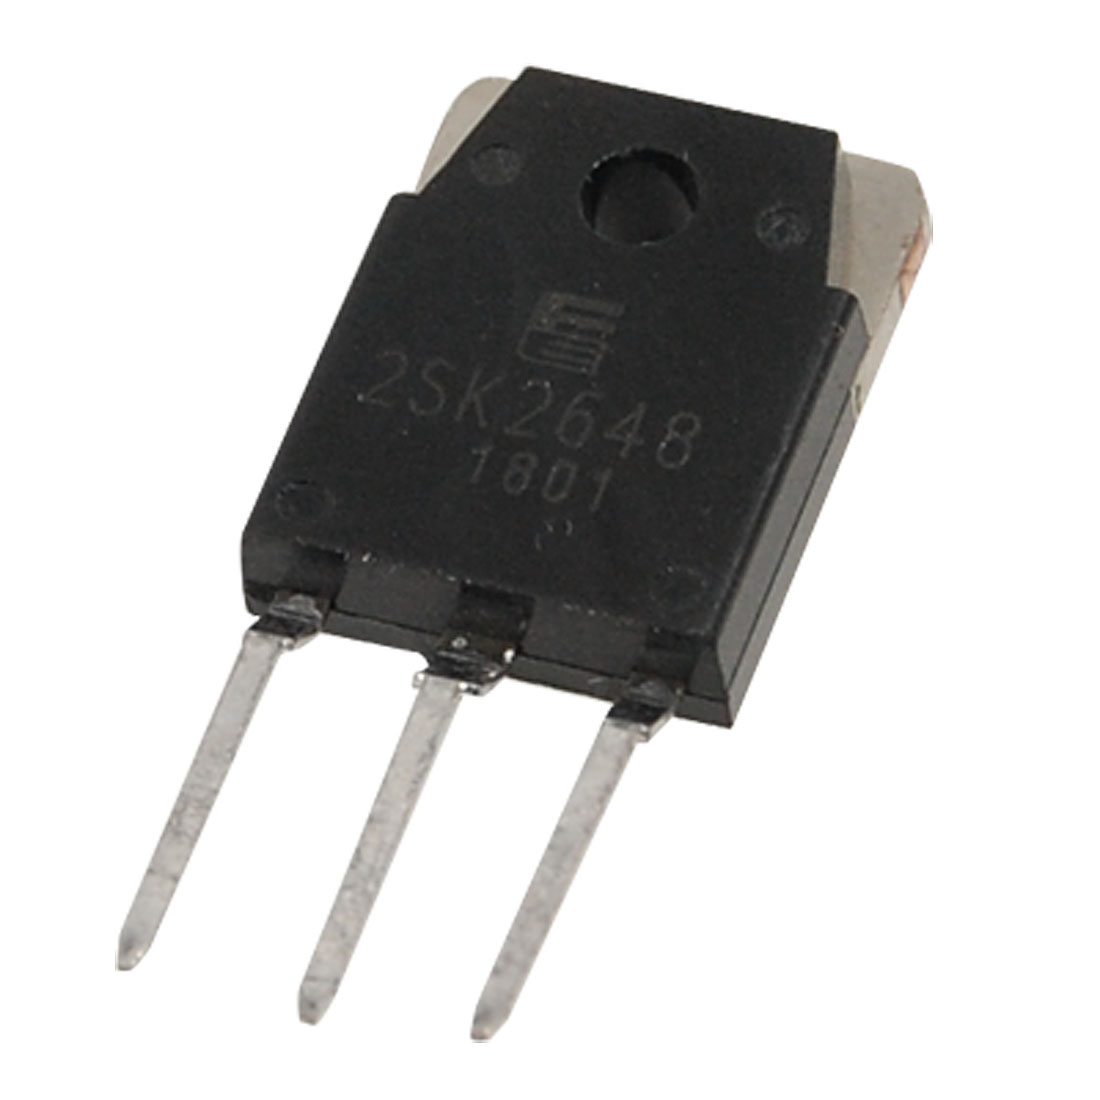 9A 800V High Speed Switching N-channel Power MOSFET 2SK2648